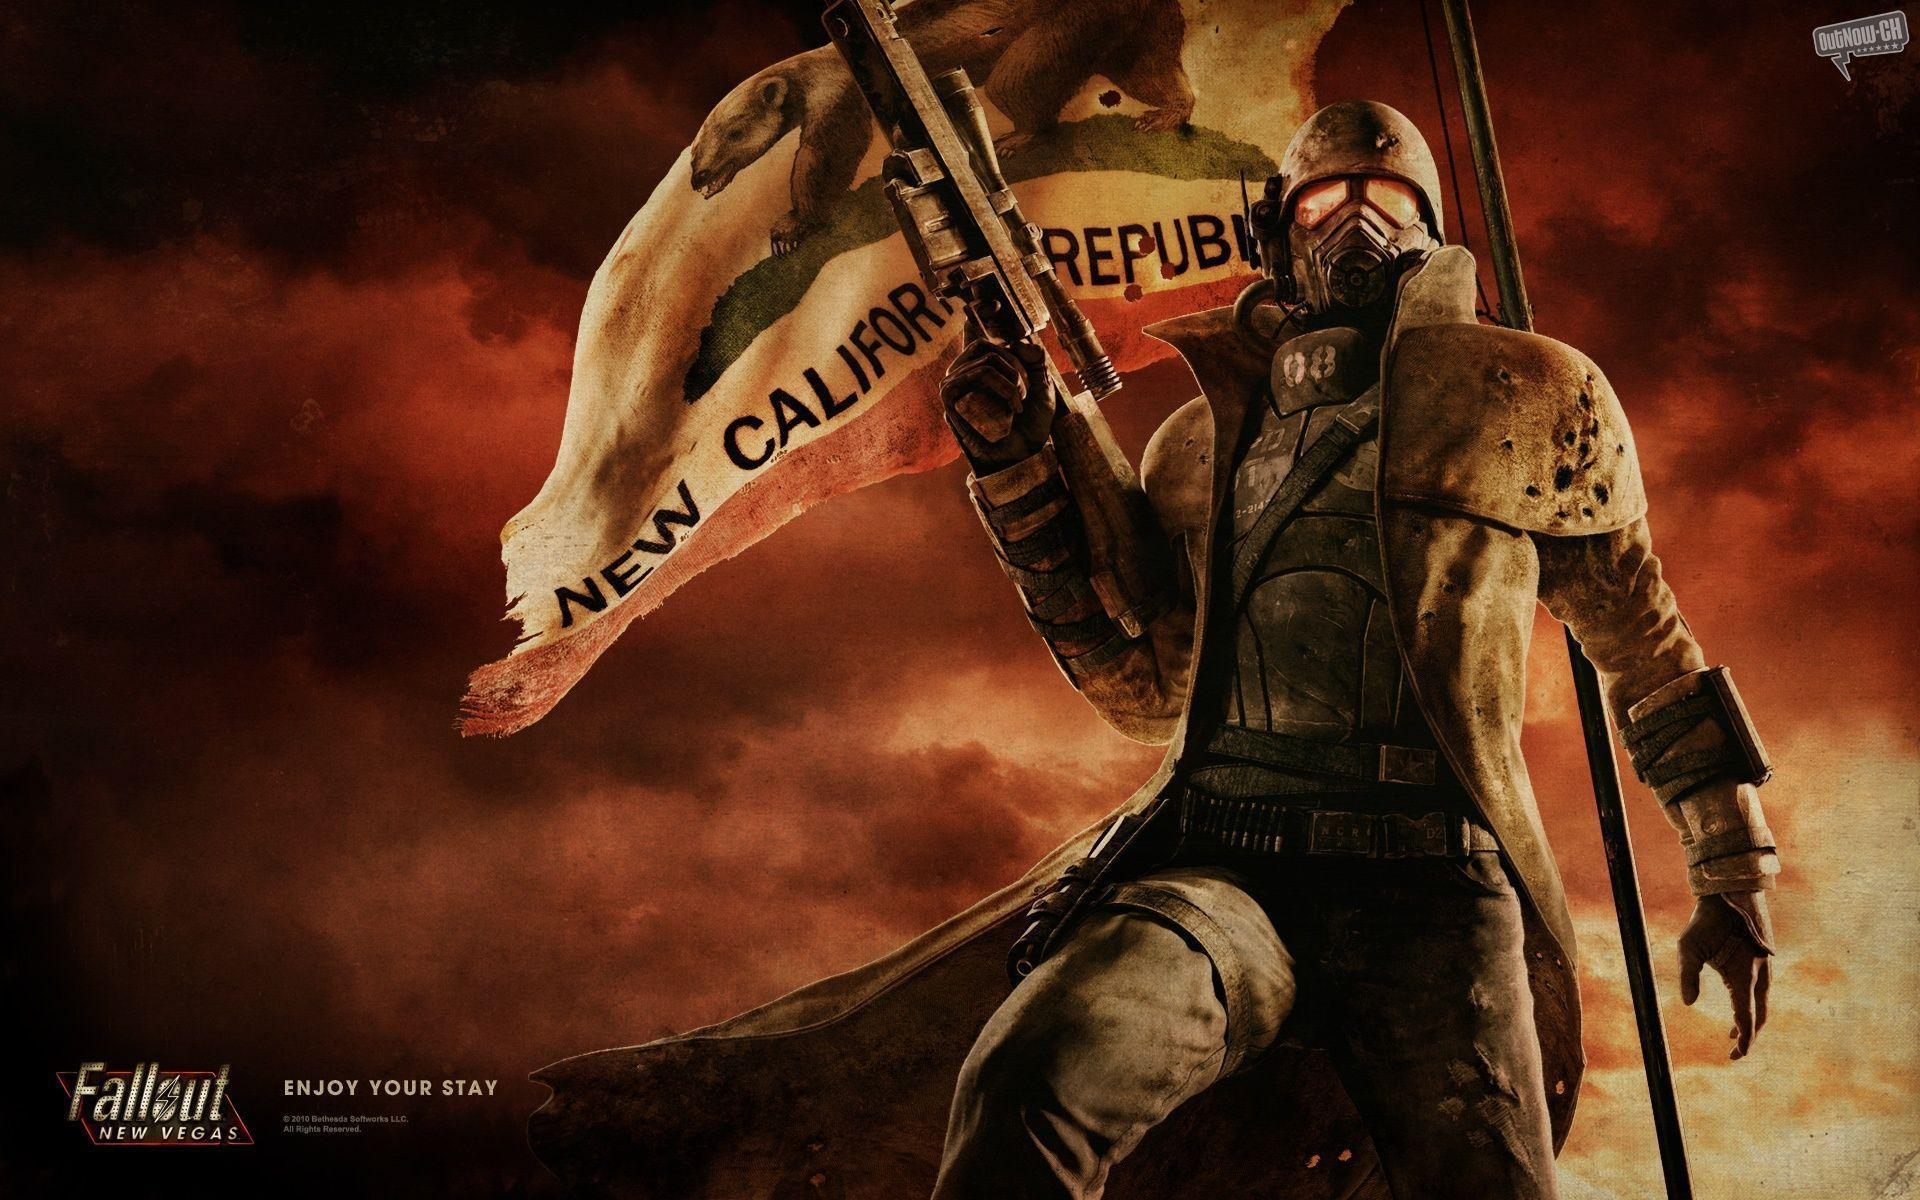 Fallout New Vegas Wallpaper 1920x1200